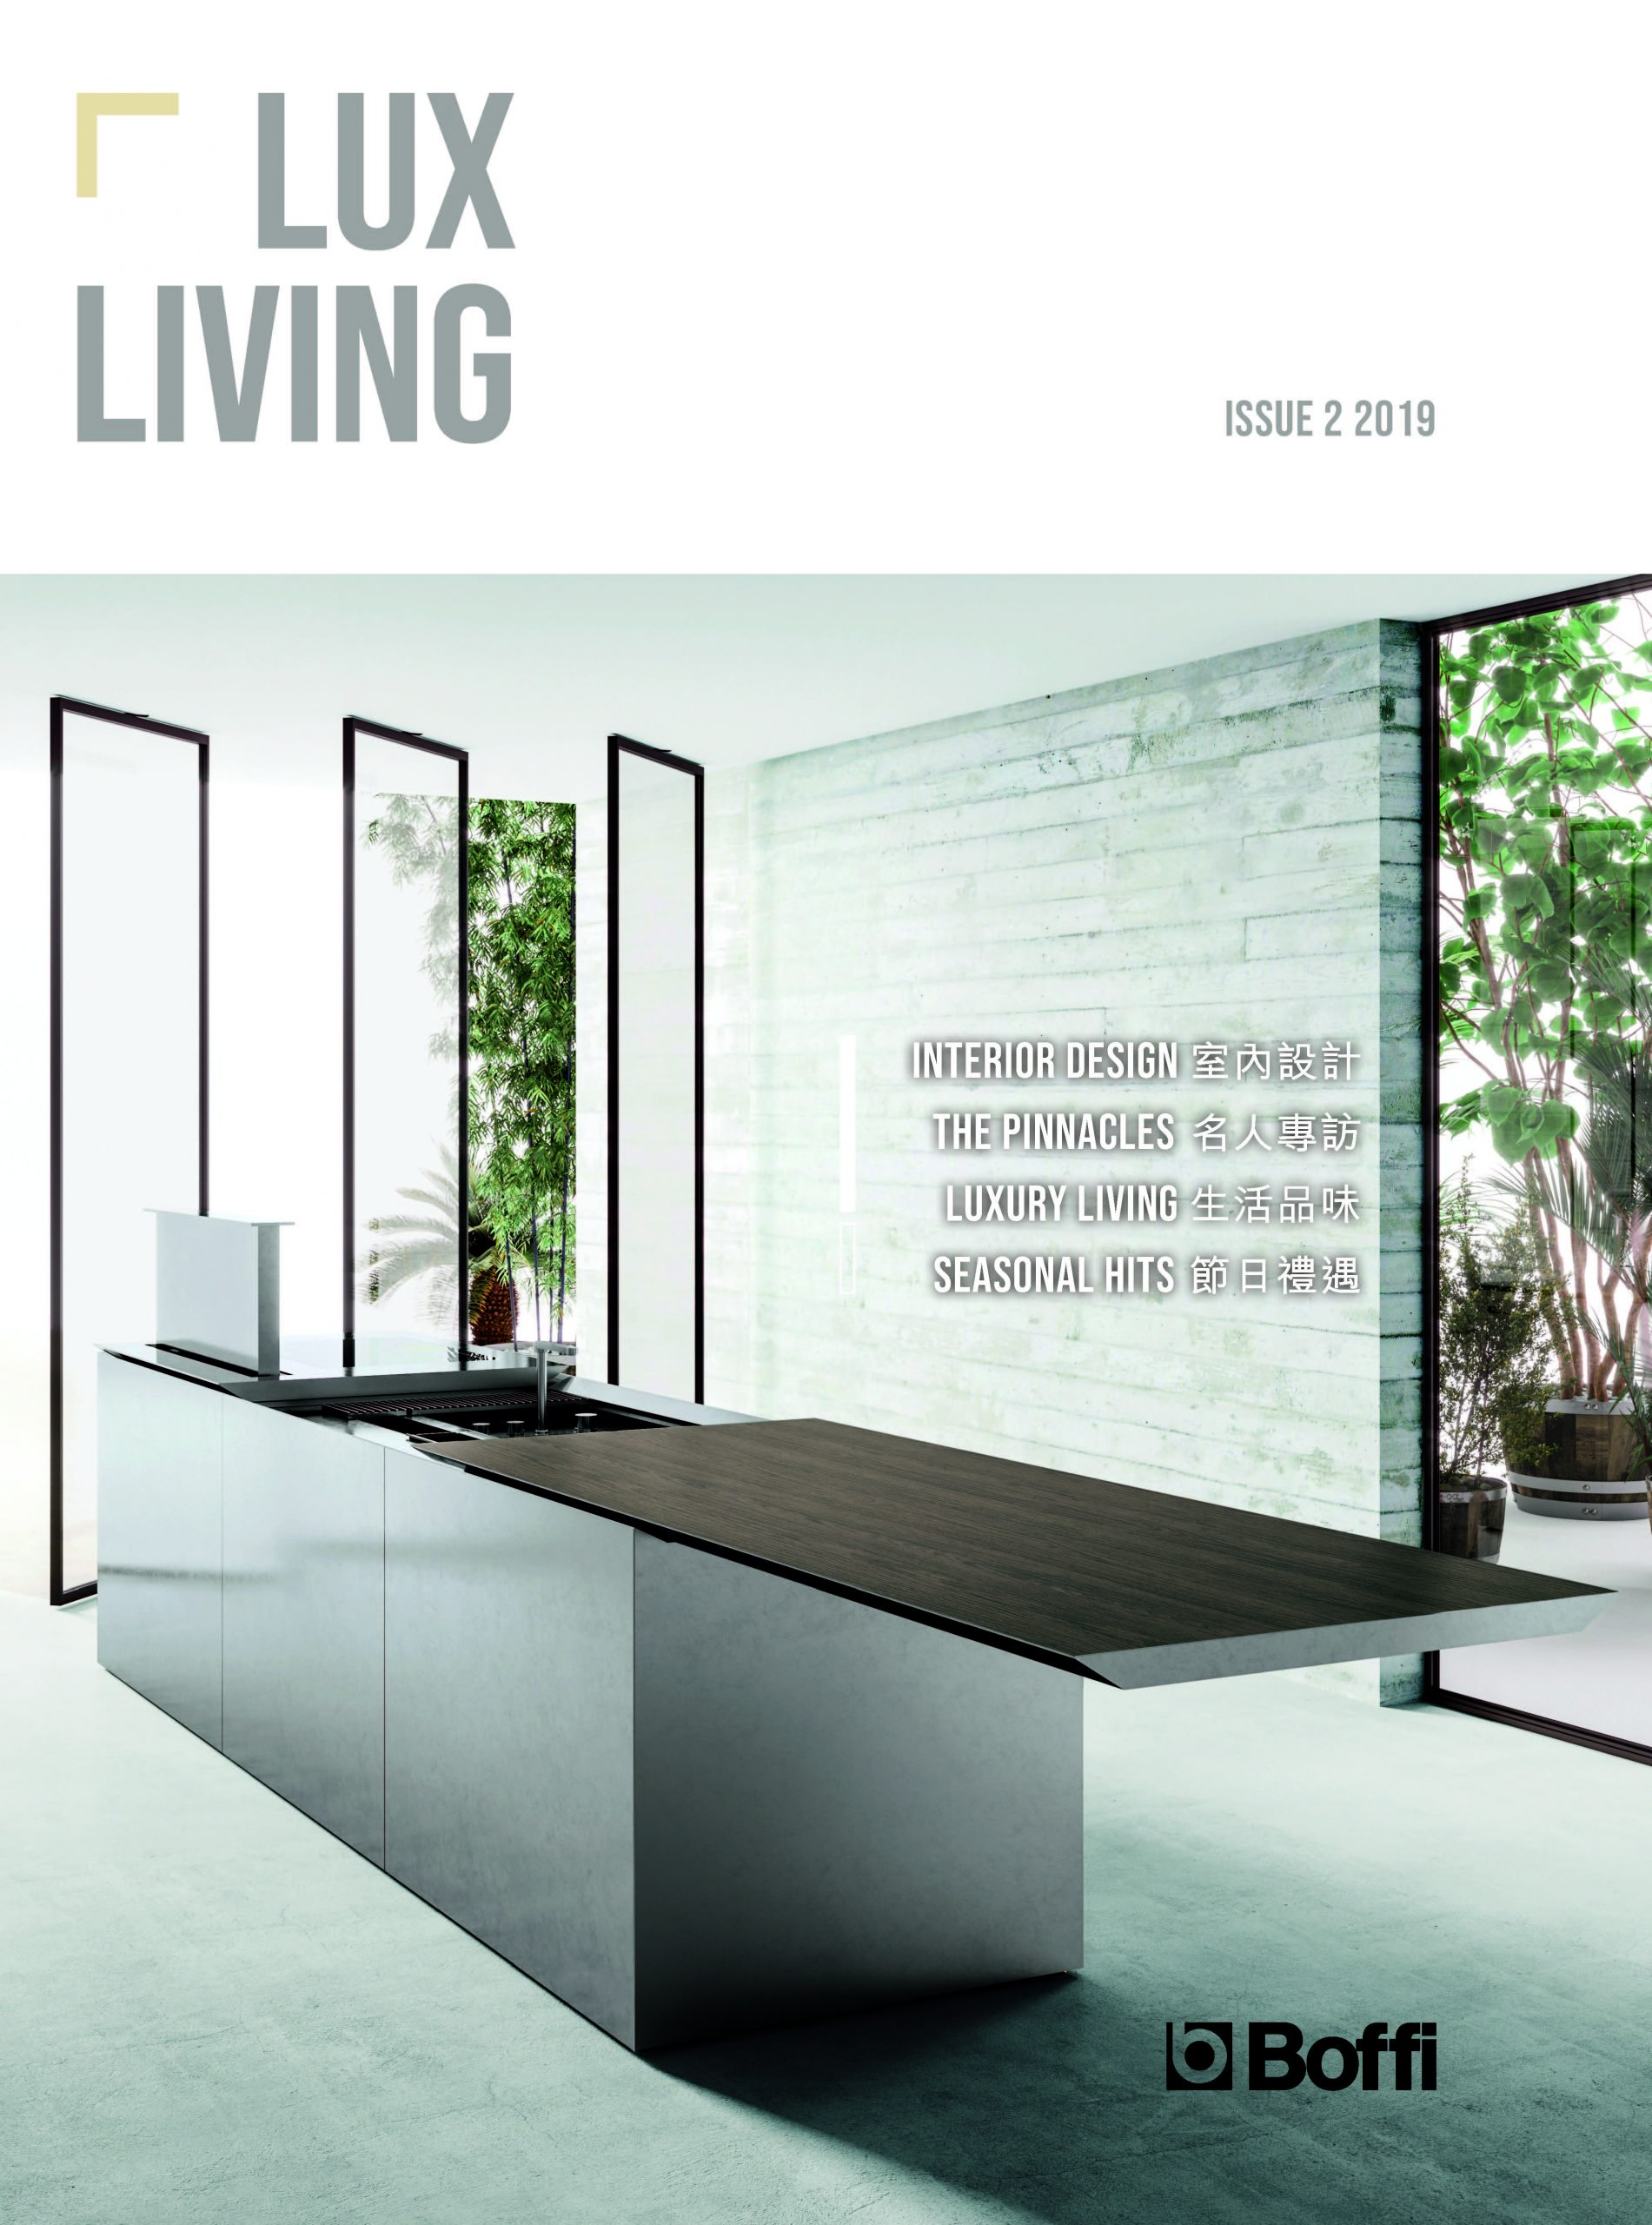 5 HKET Luxe Living TLD 01 Dec 2019 Issue Page 1